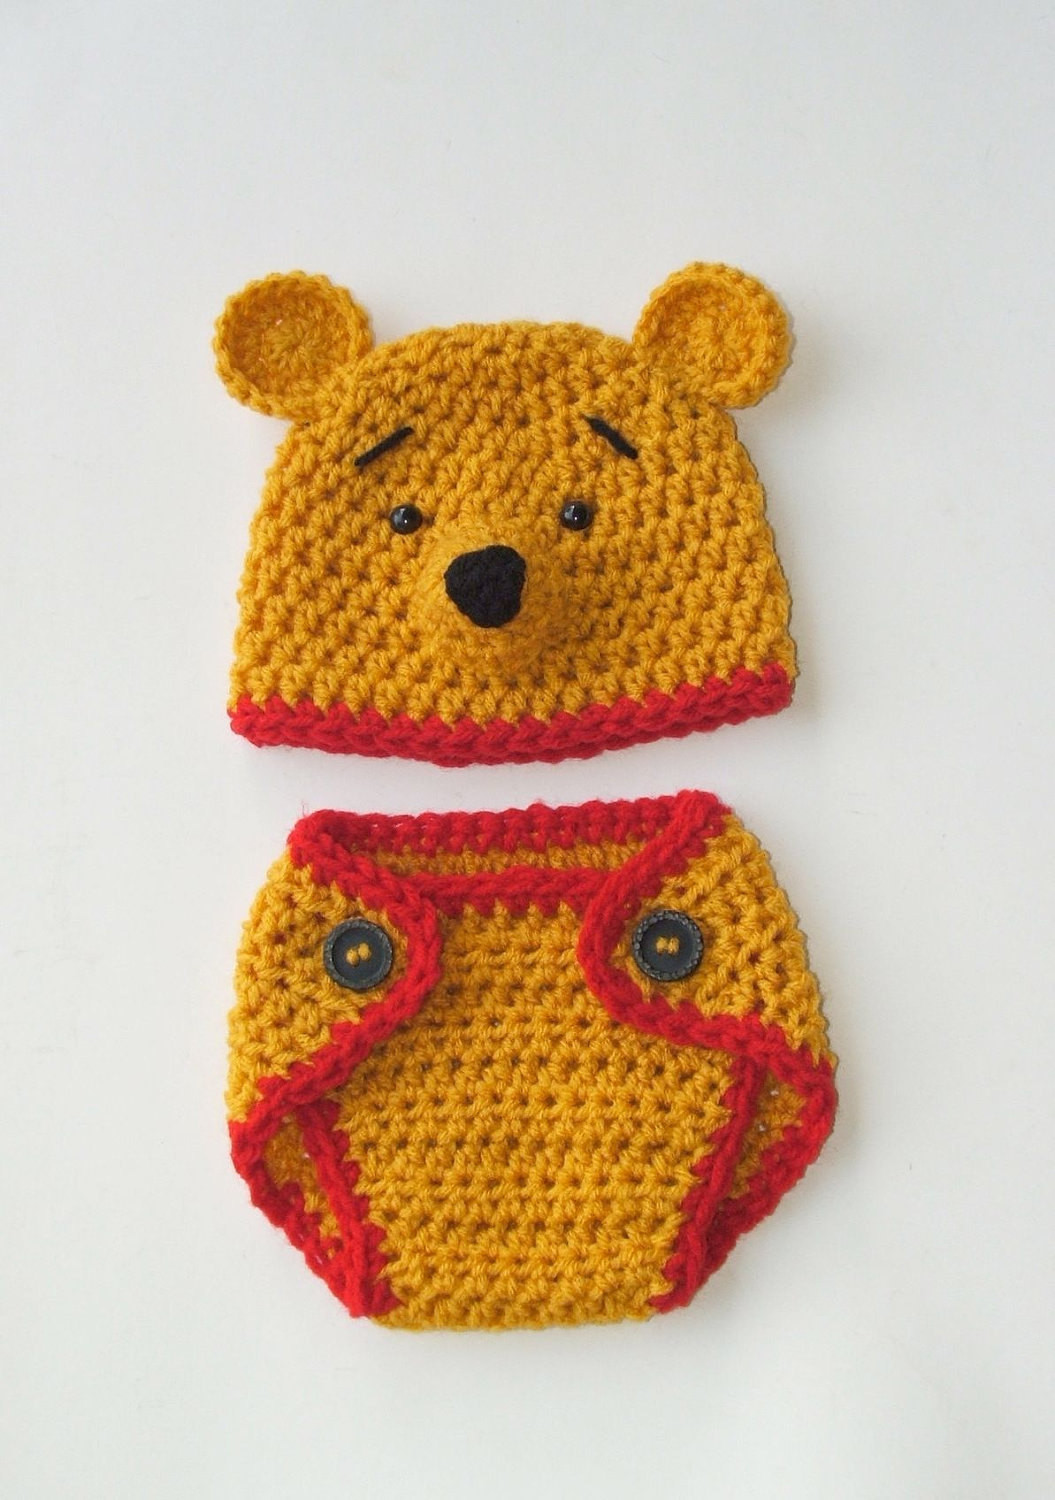 Winnie the Pooh Crochet Lovely Winnie the Pooh Inspired Diaper Cover & Hat Newborn 3month Of Wonderful 41 Ideas Winnie the Pooh Crochet